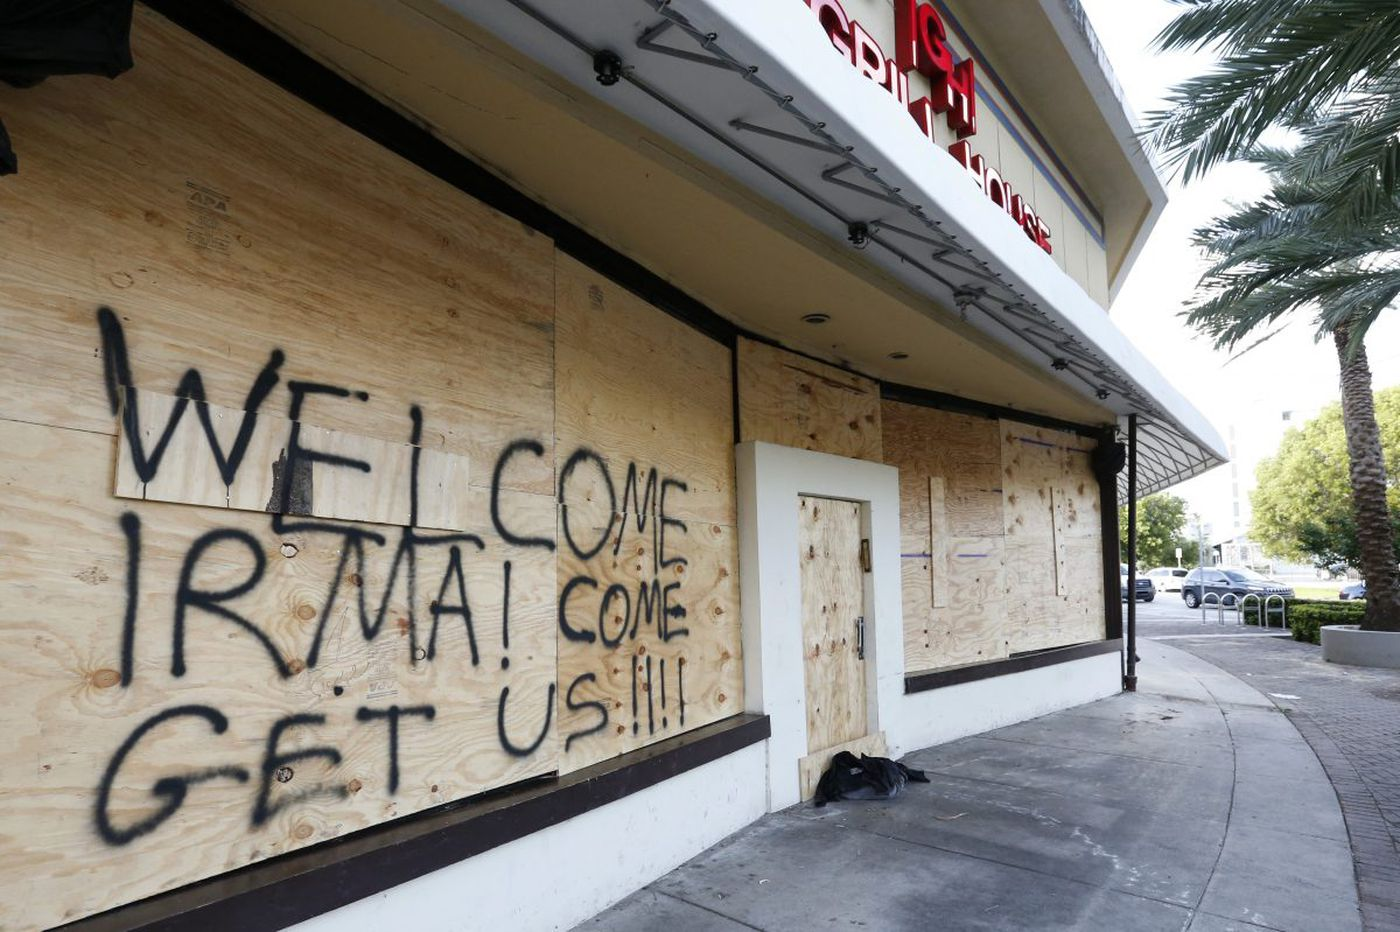 Irma tales: Philly-area transplants in Florida debate whether to stay or go